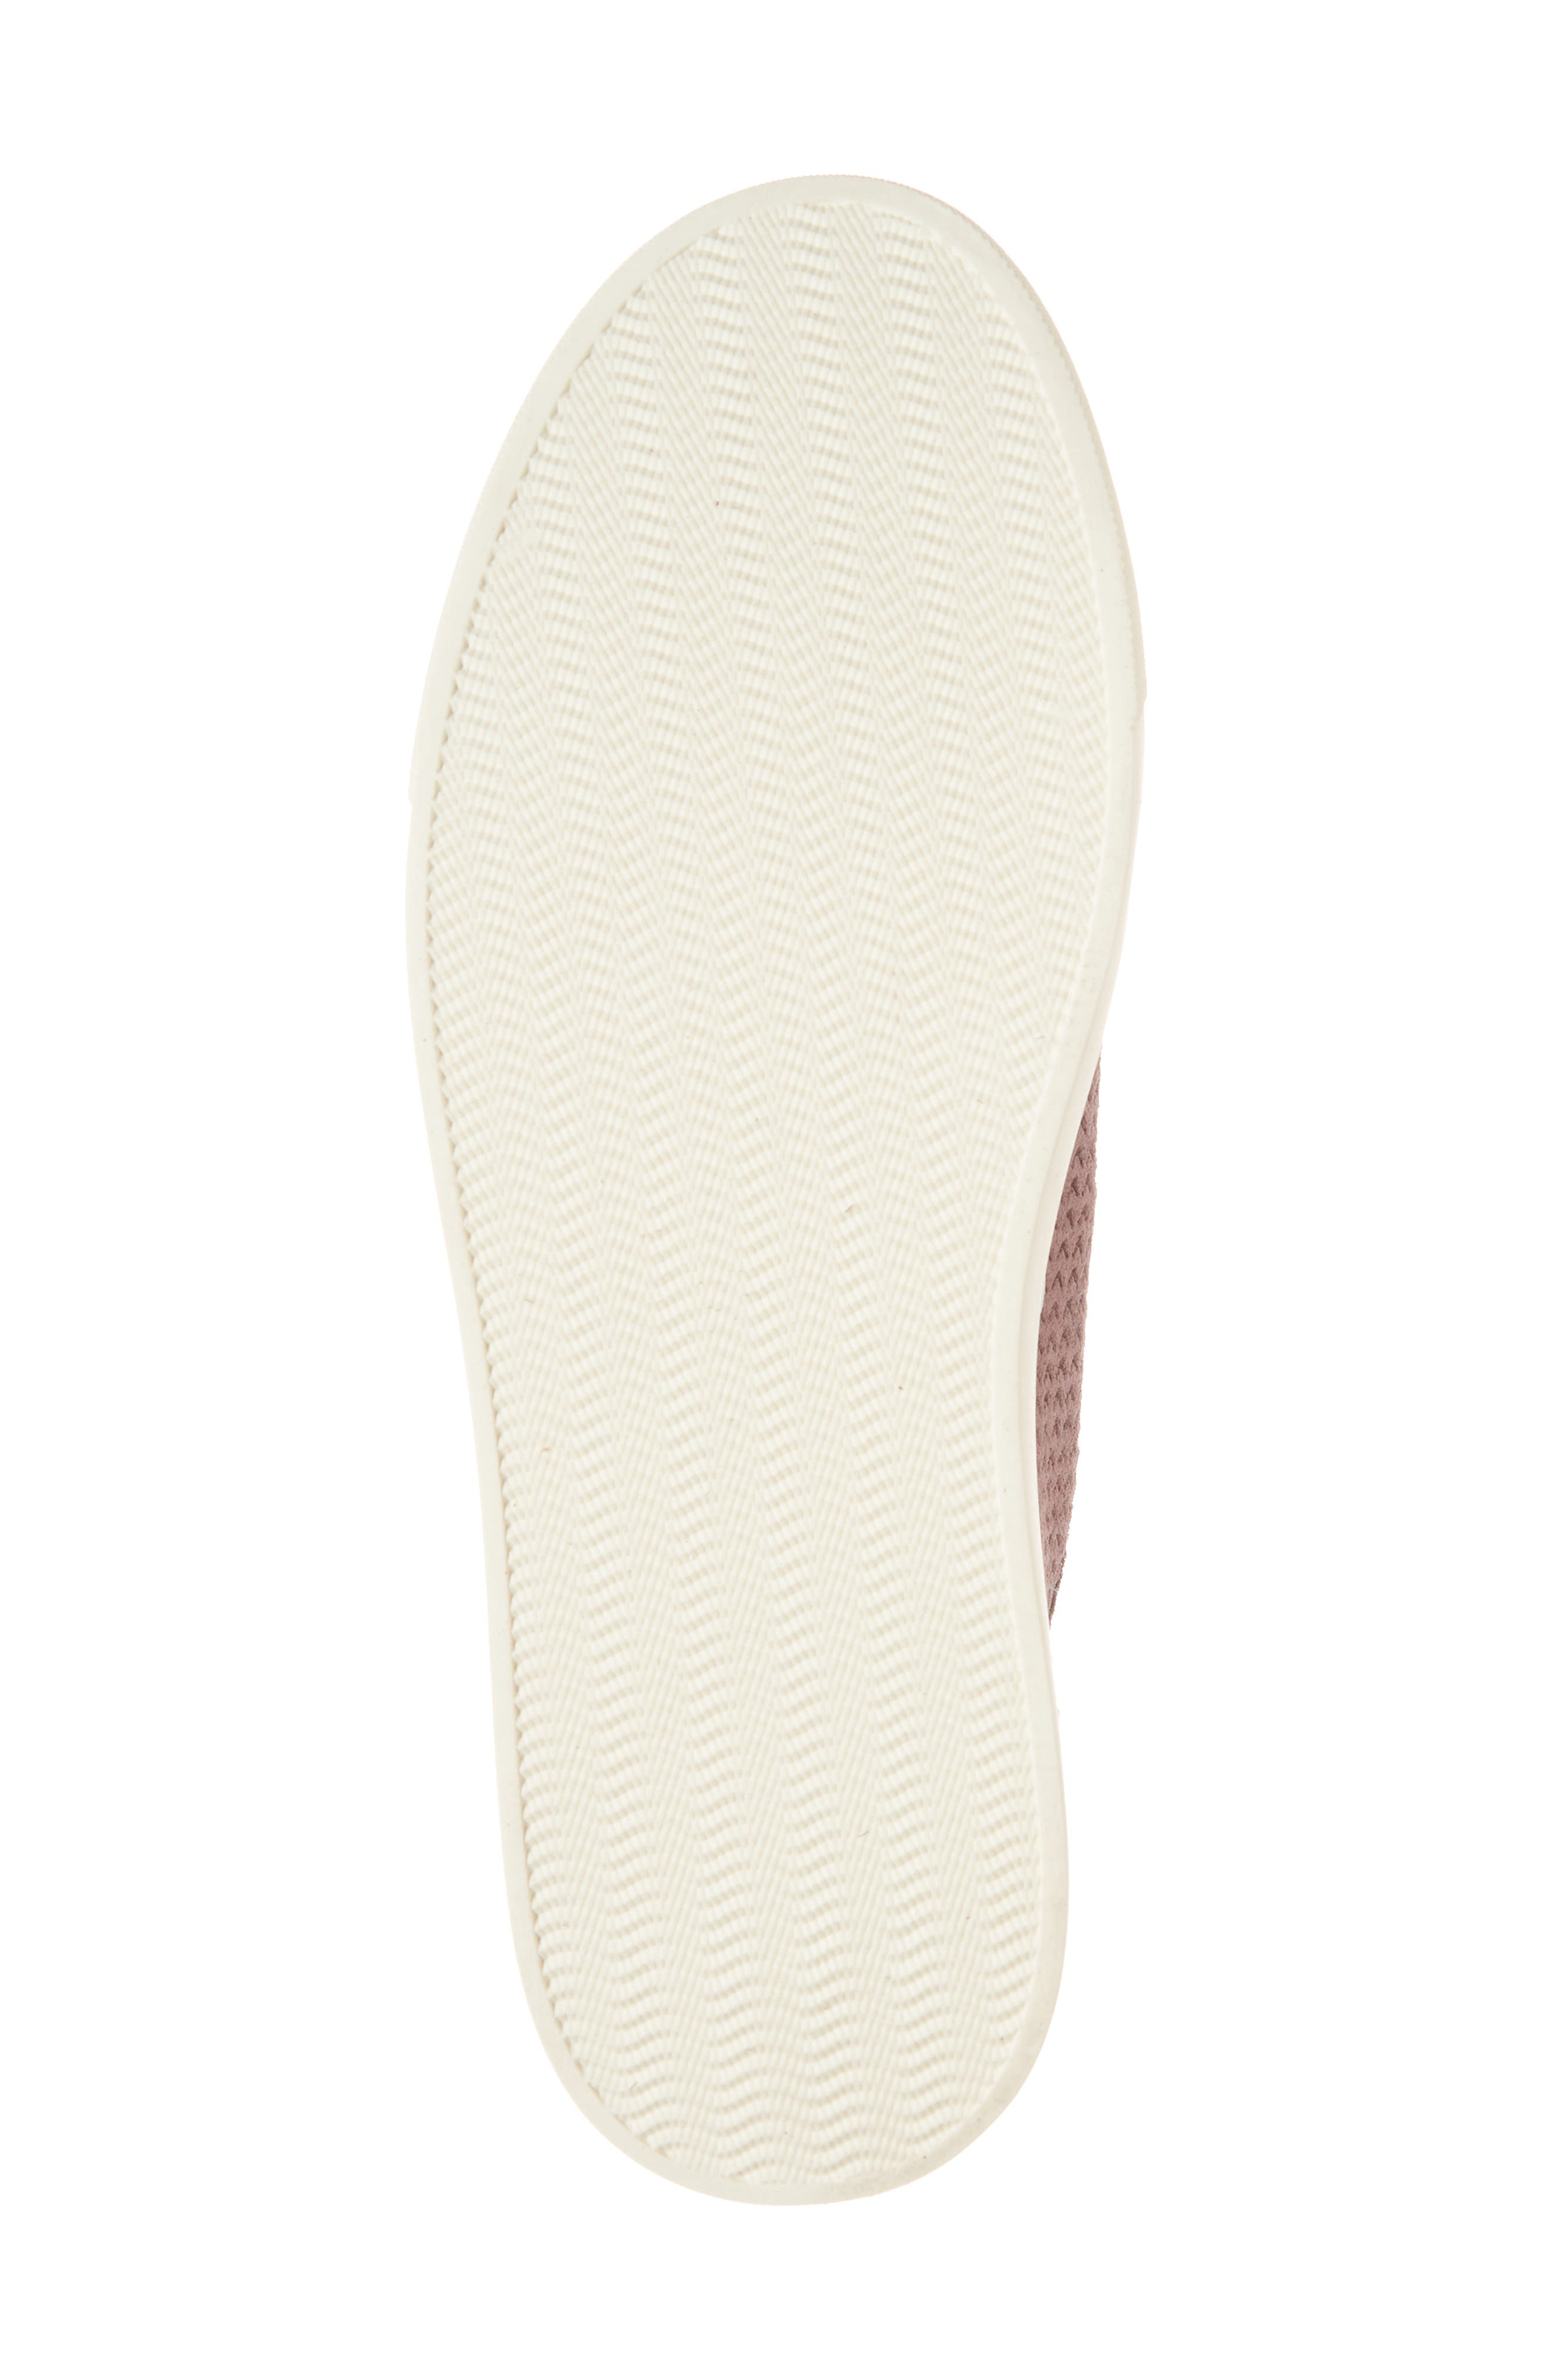 Lawove Sneaker,                             Alternate thumbnail 6, color,                             Berry Smooth Suede